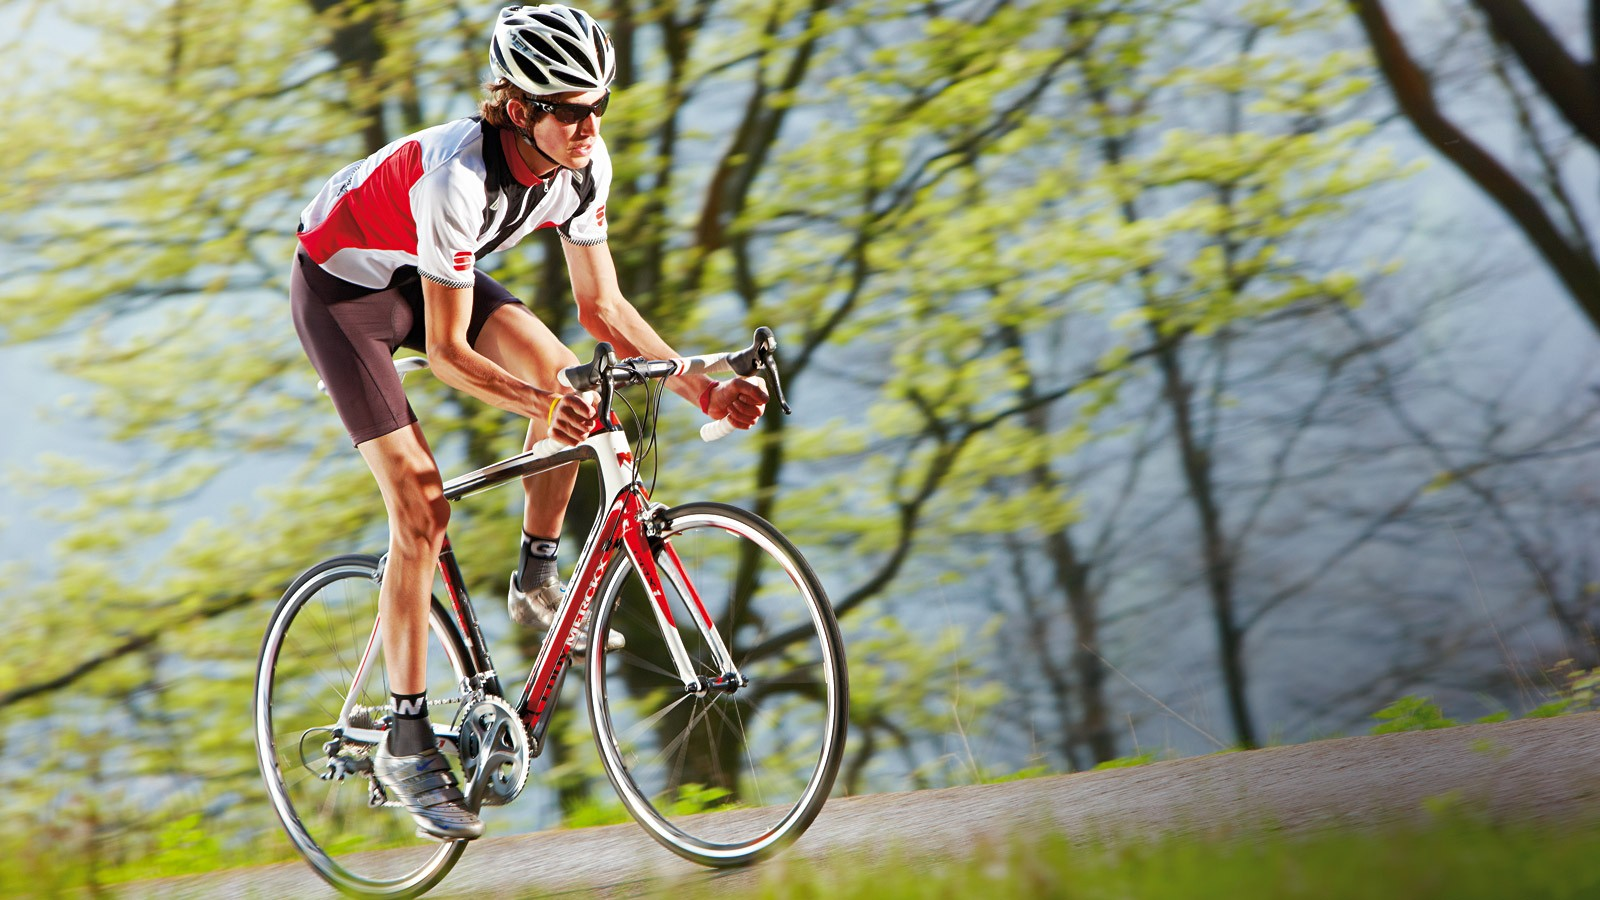 Interval training can help you reach your goals